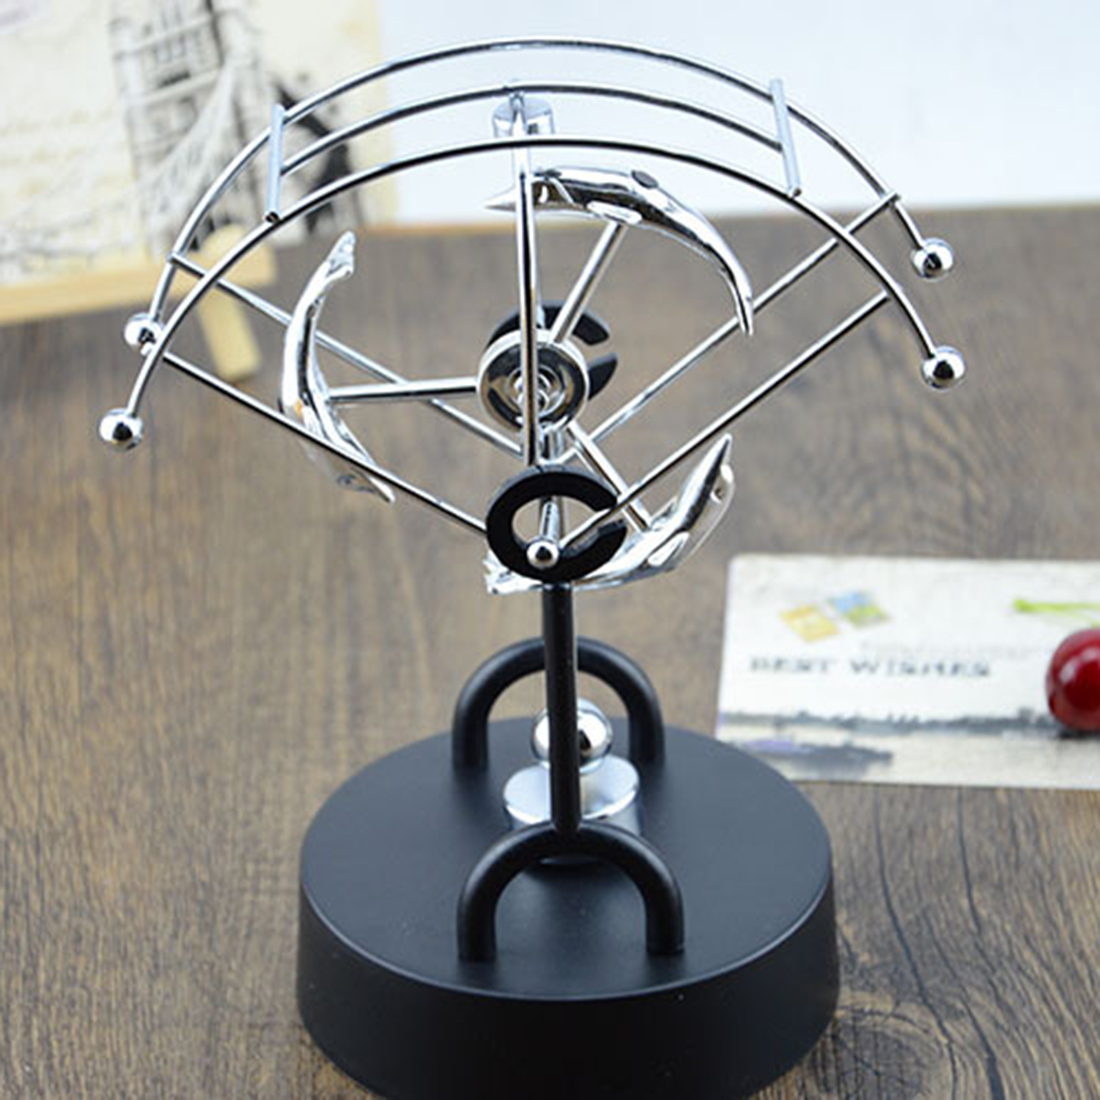 Creative Science Educational Decoration Parachute Sector Rocker Perpetual Motion Crafts Office Desk Home Decoraction Toy For Kid